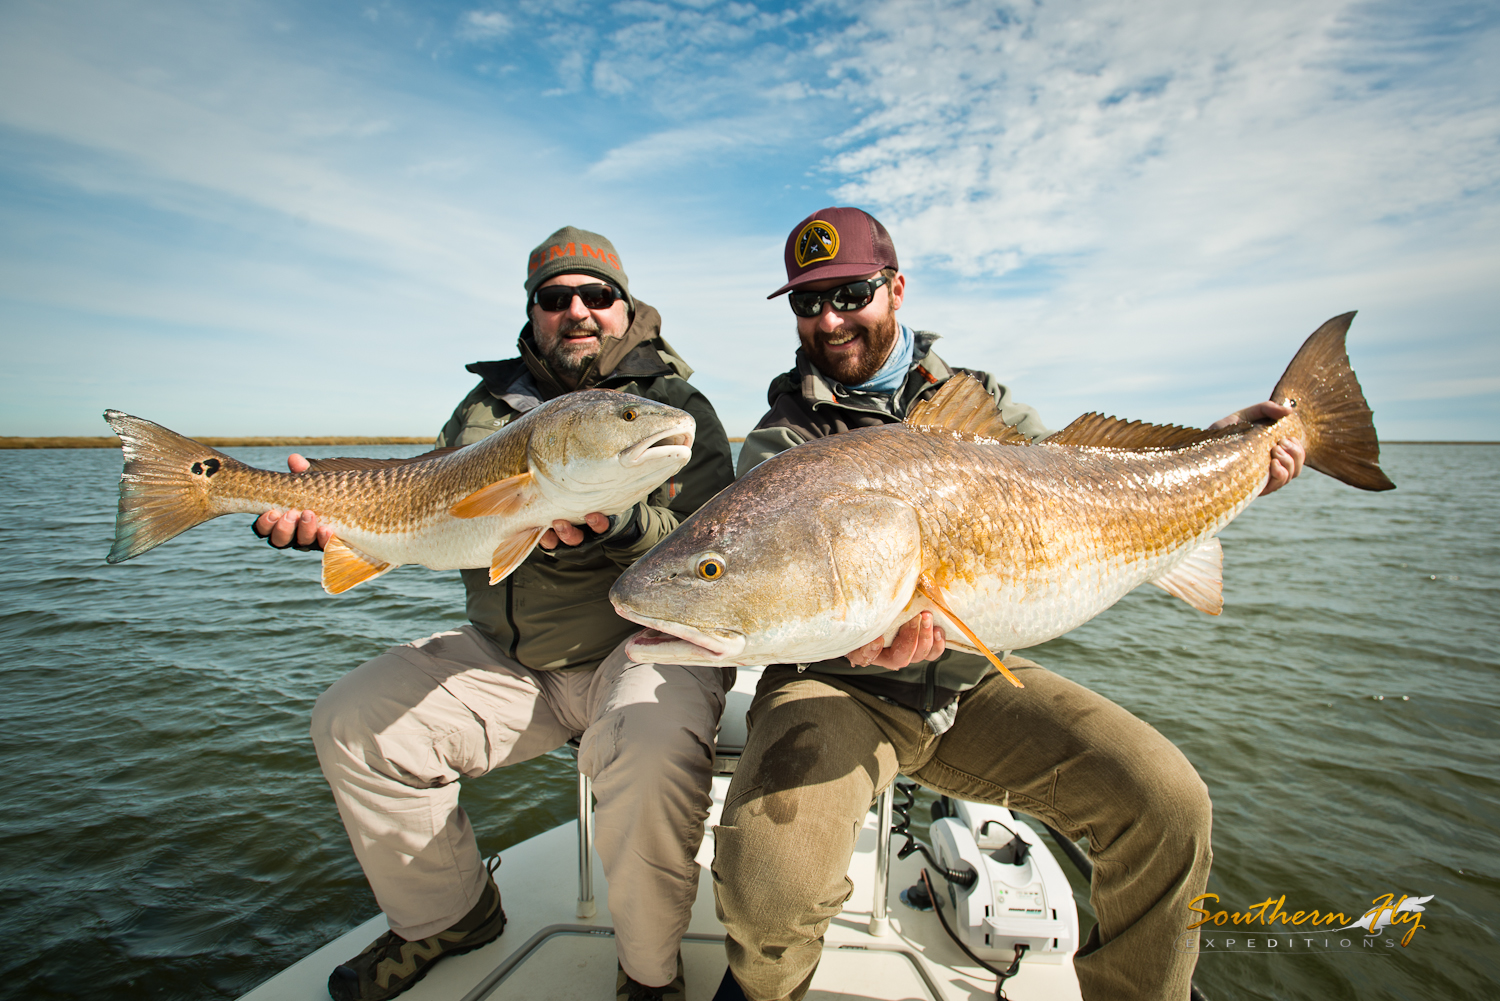 The best fly fishing guide in Louisiana join a charter by southern fly expeditions and captain brandon keck